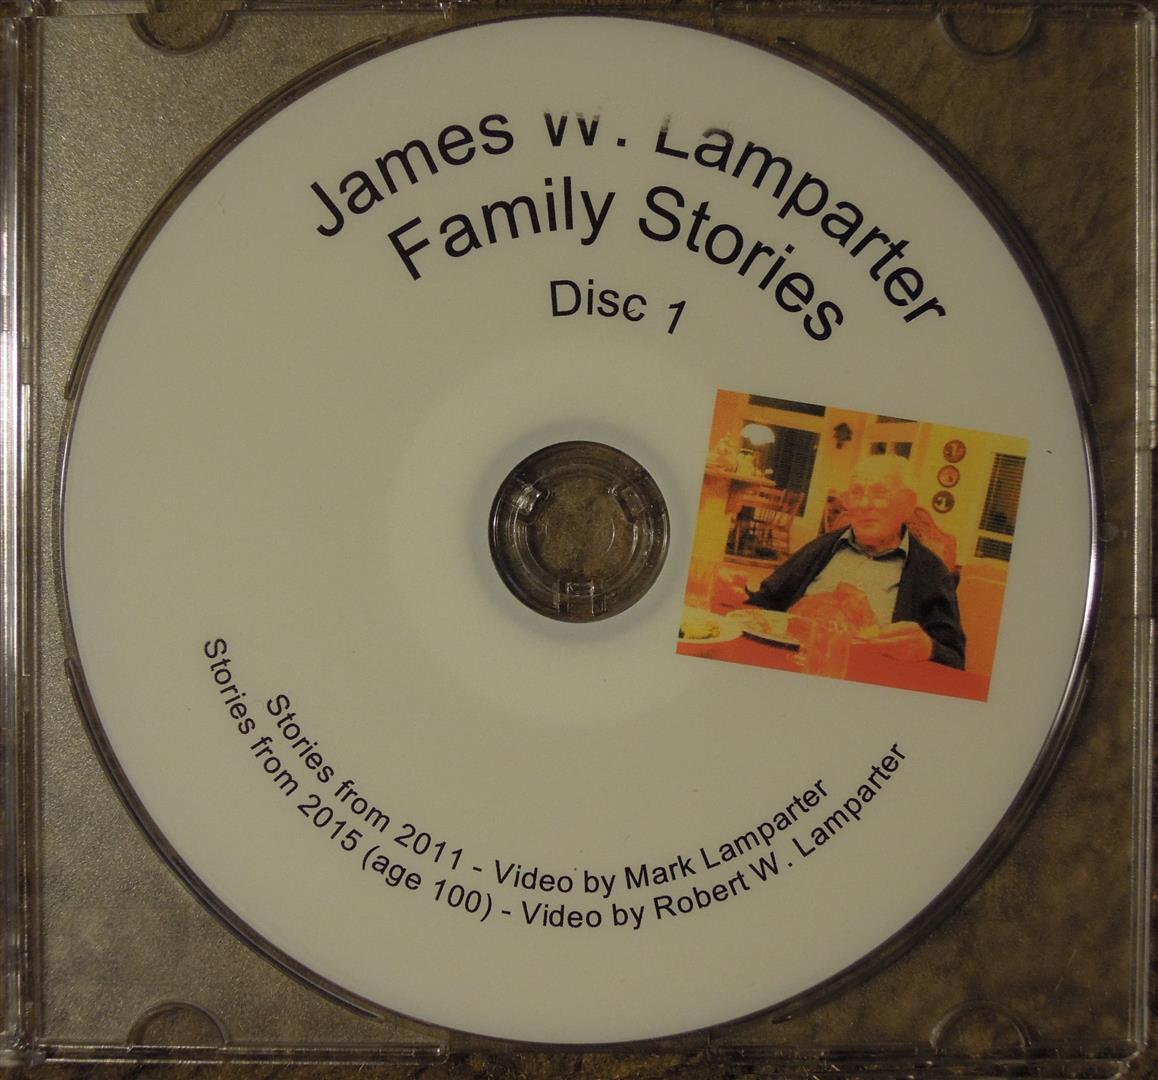 01 CD printing problem - Uncle Jim's Stories-cropped (Large).jpg